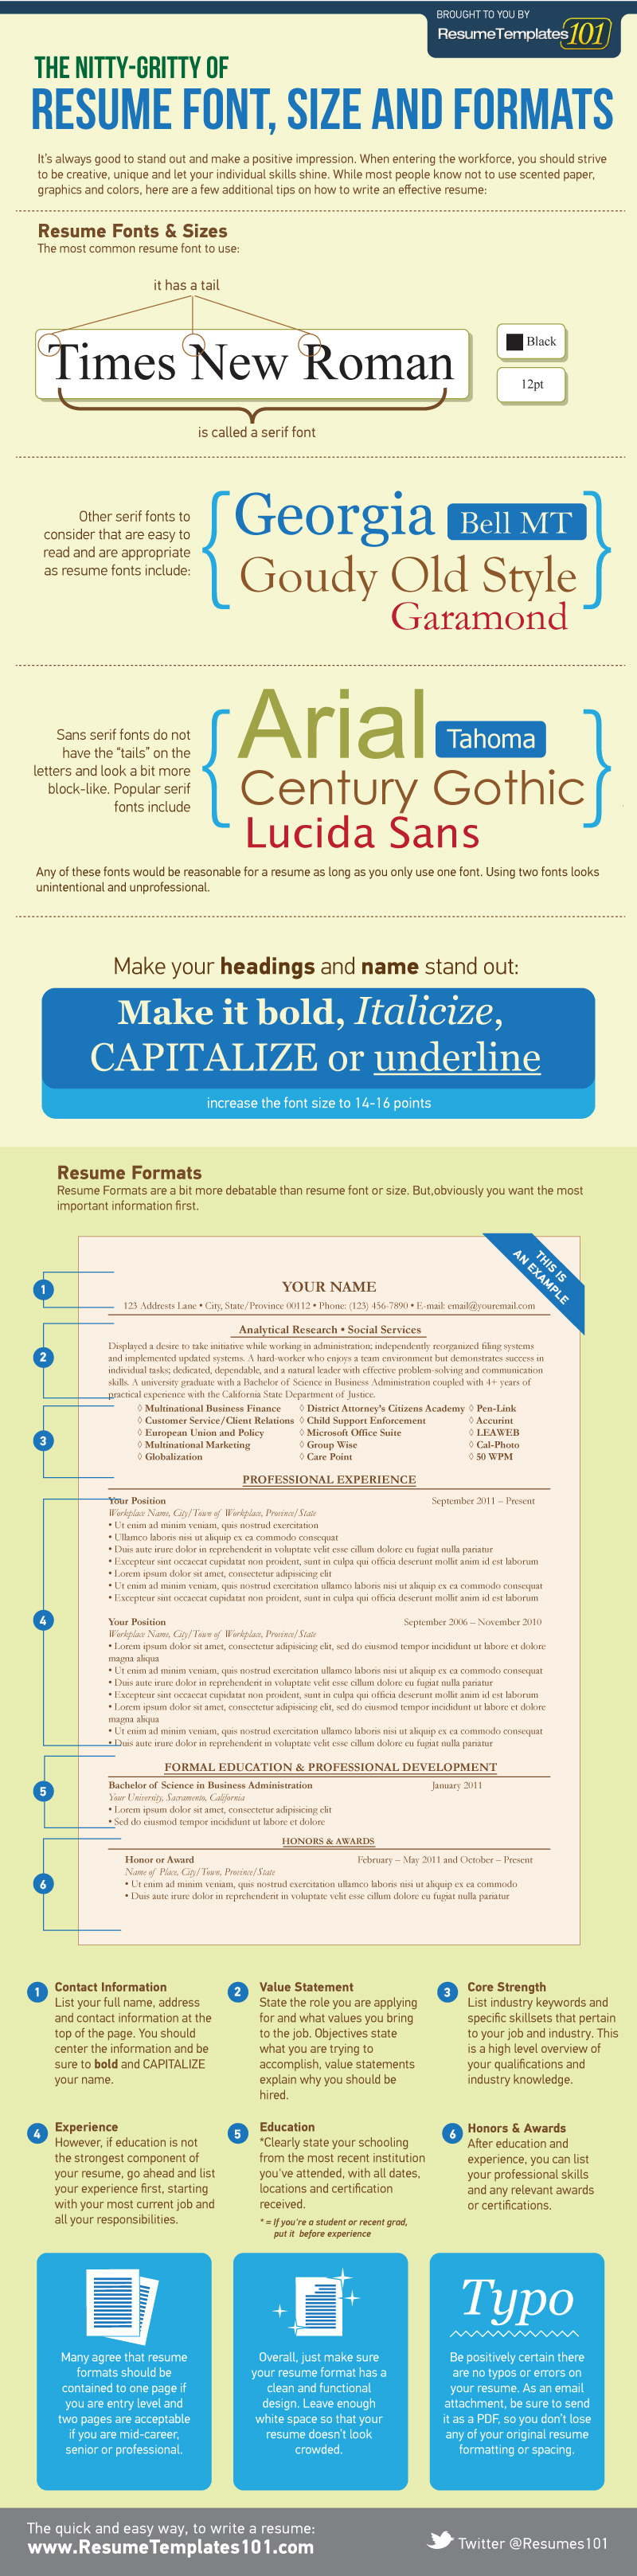 Perfect Resume Font, Size and Formats- Infographic